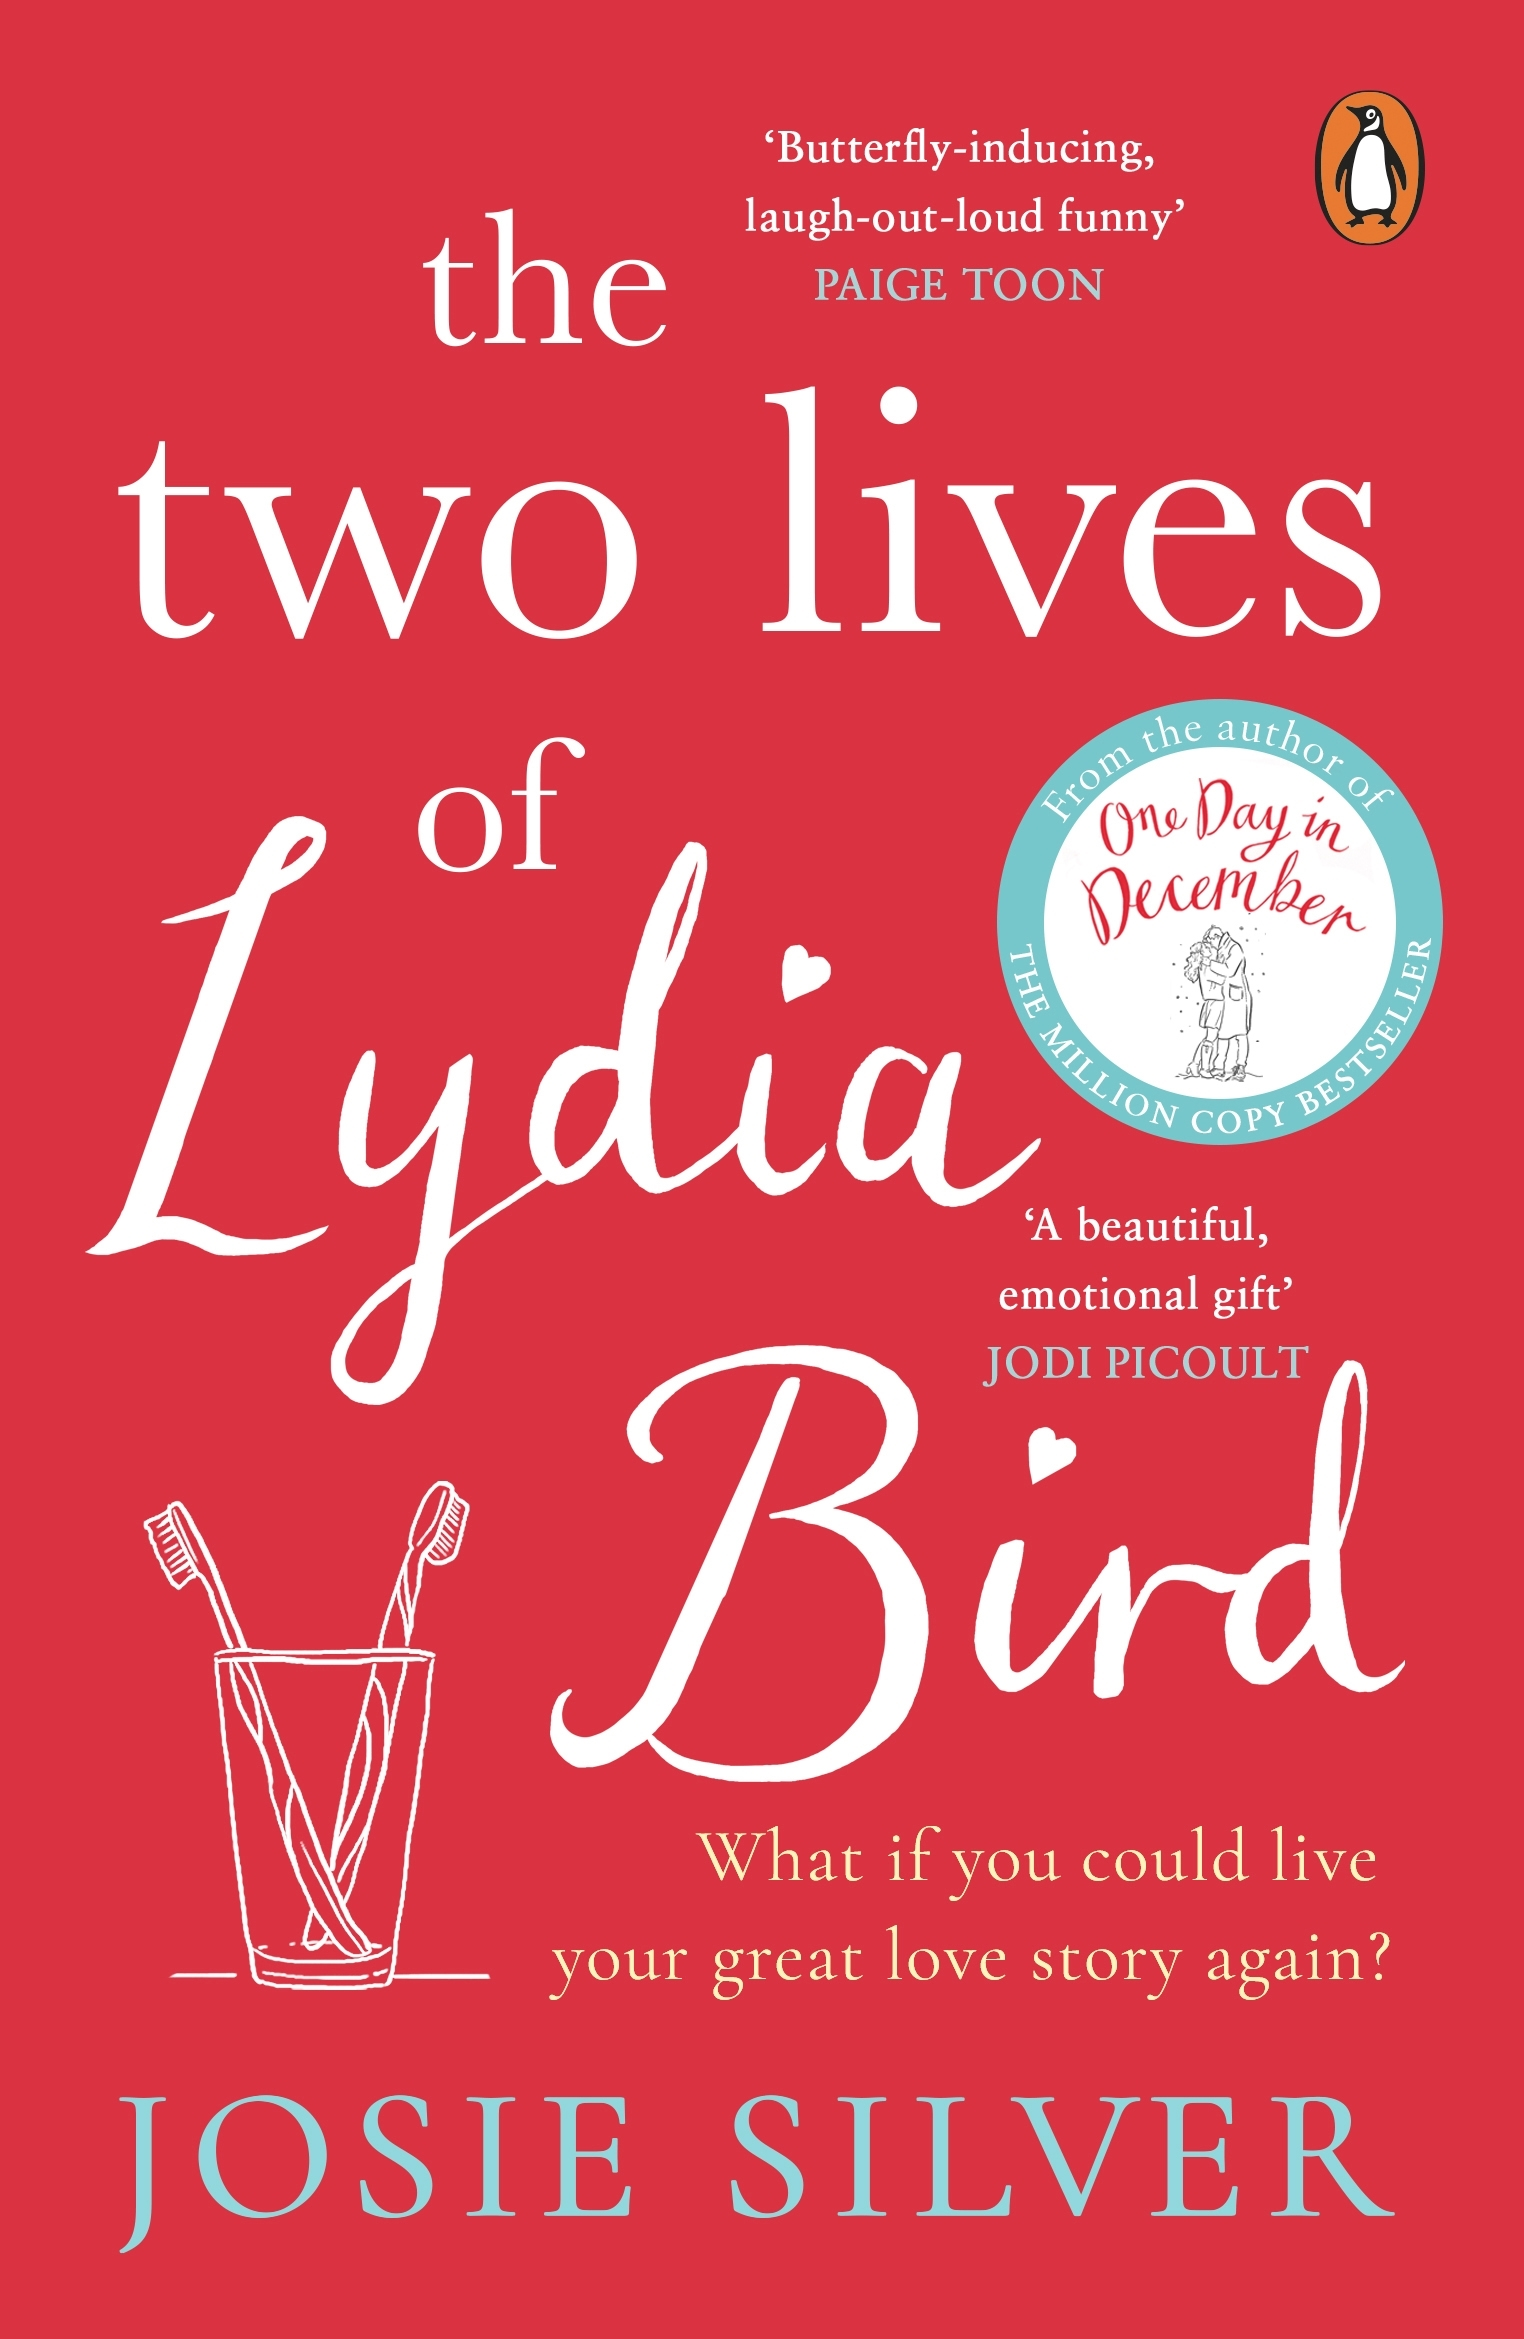 The Two Lives of Lydia Bird by Josie Silver - Penguin Books Australia